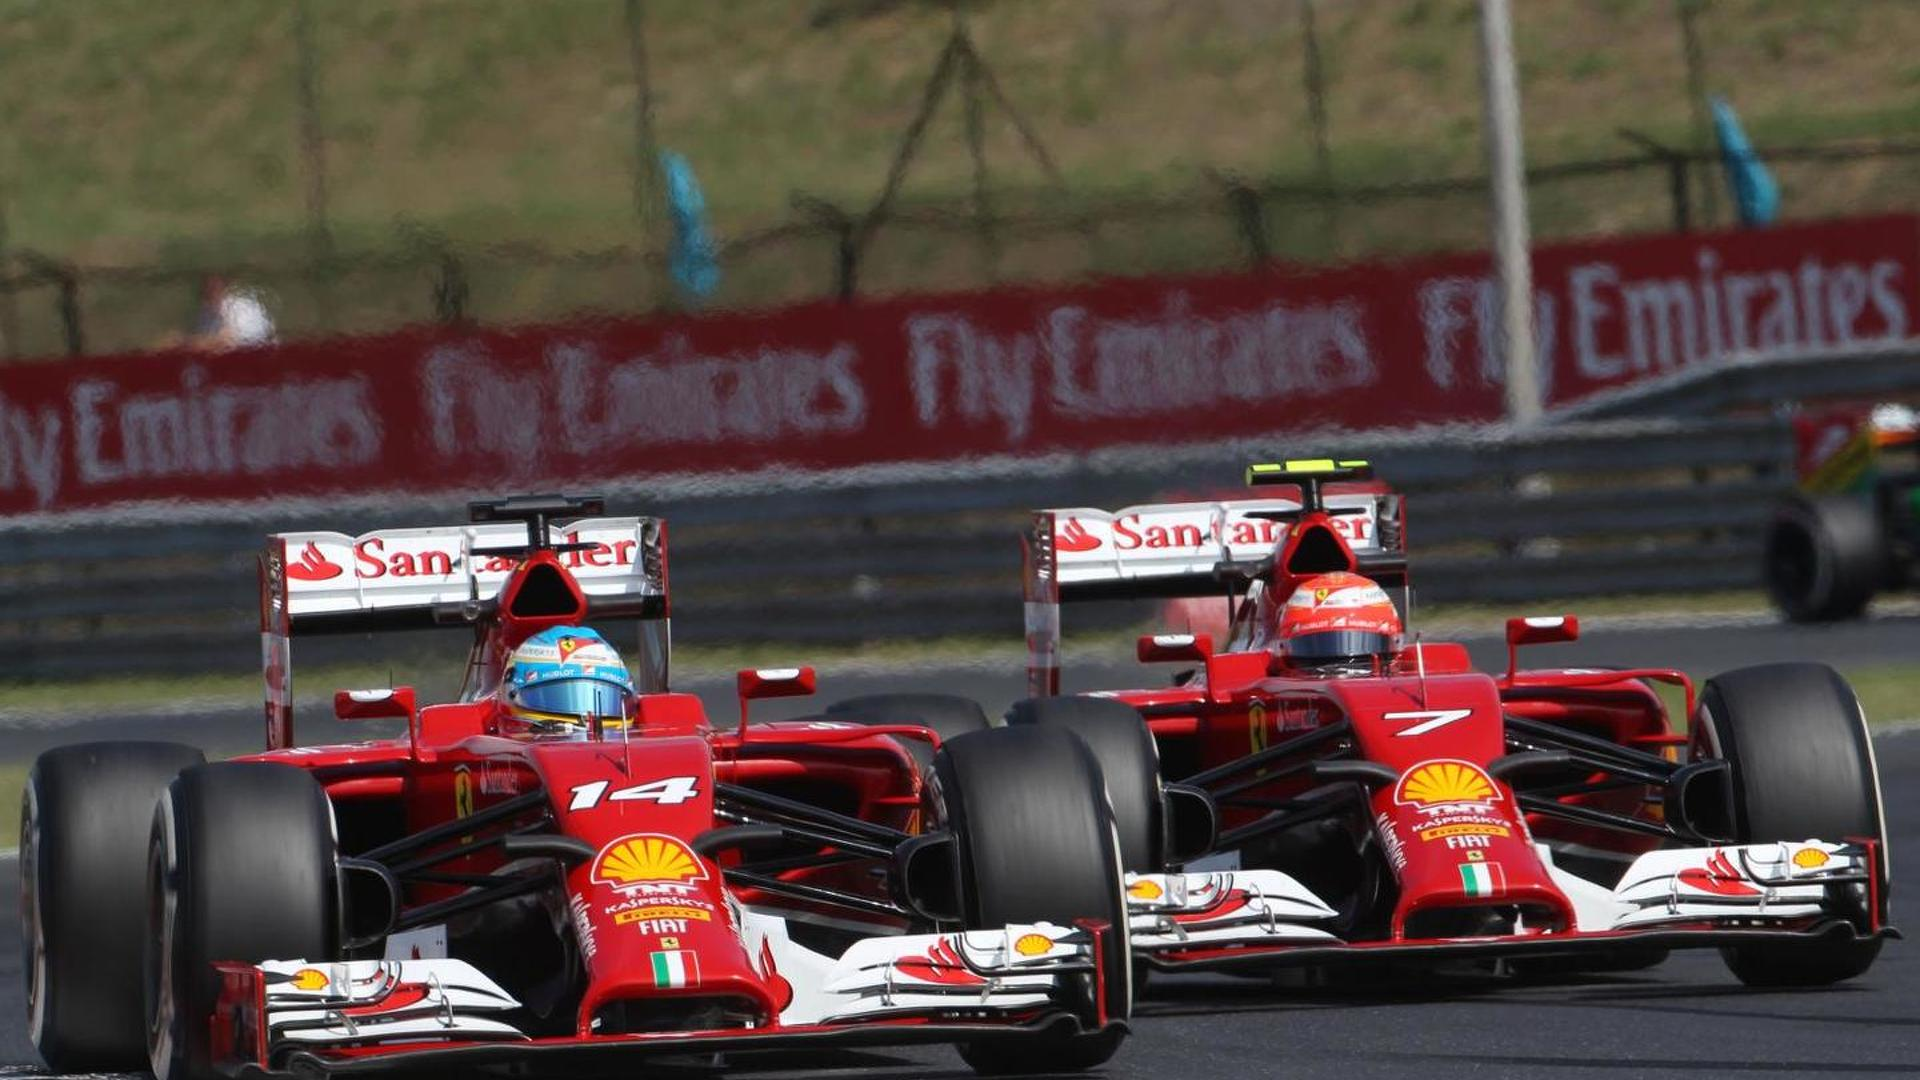 Todt tips Ferrari to end crisis quickly